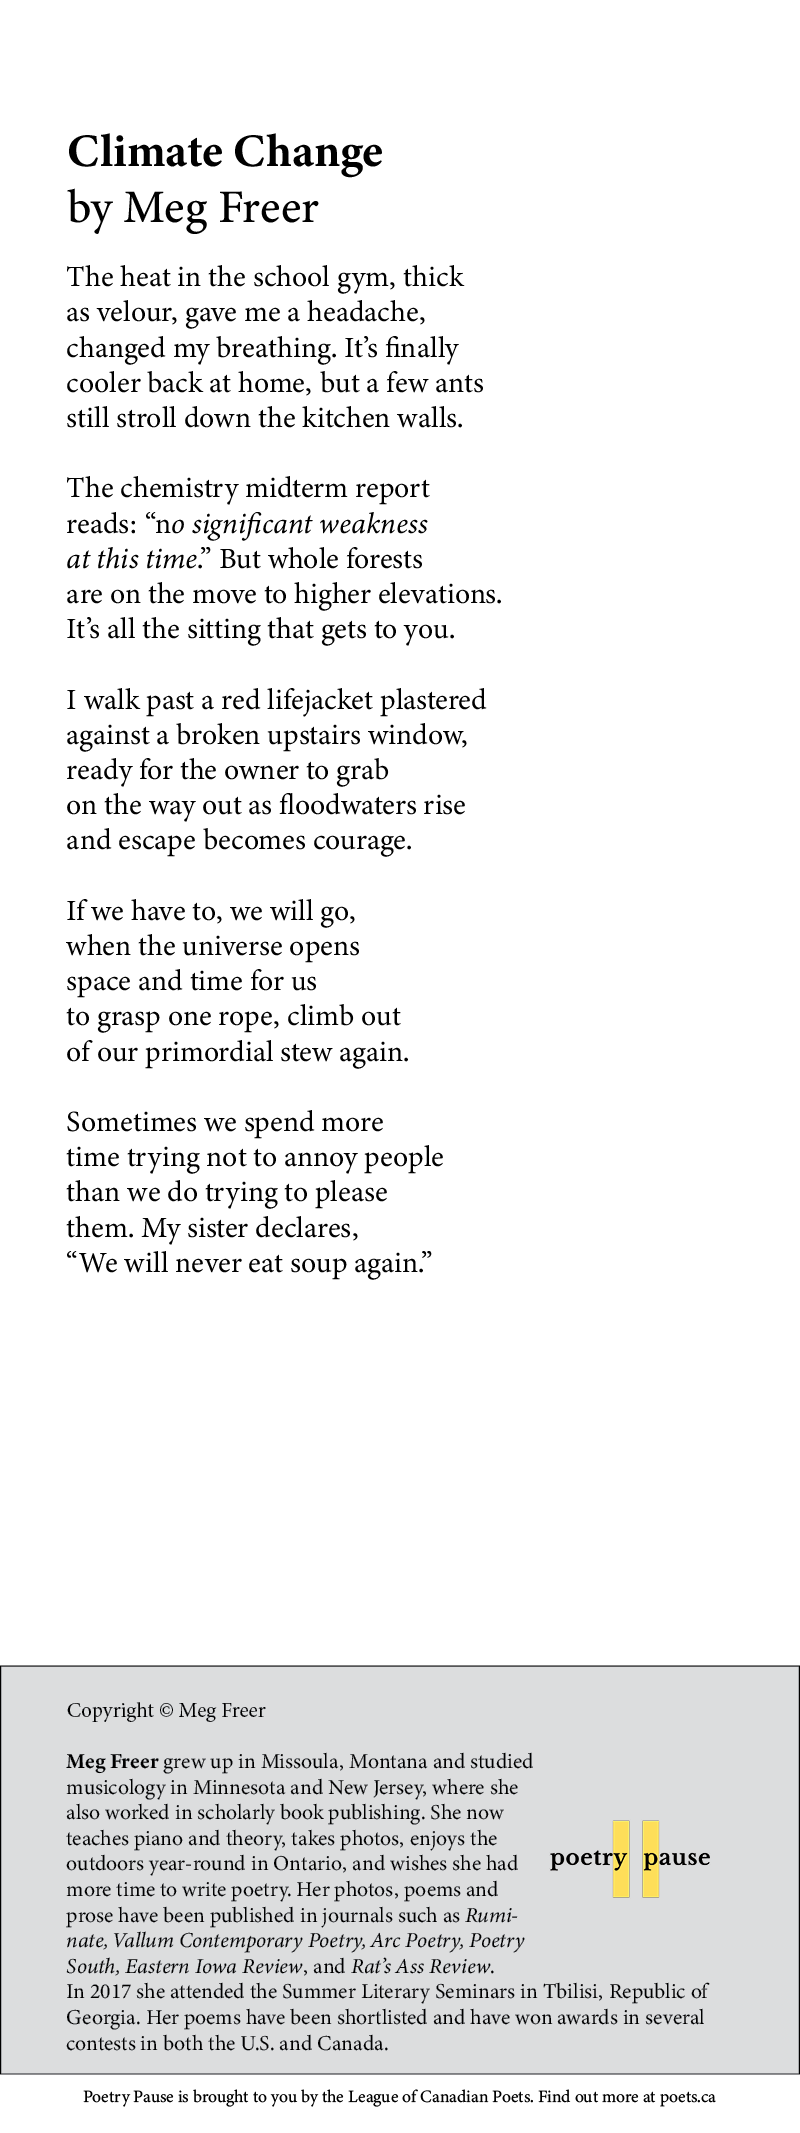 """Poem Title: Climate Change Poet Name: Meg Freer Poem: The heat in the school gym, thick as velour, gave me a headache, changed my breathing. It's finally cooler back at home, but a few ants still stroll down the kitchen walls. The chemistry midterm report reads: """"no significant weakness at this time."""" But whole forests are on the move to higher elevations. It's all the sitting that gets to you. I walk past a red lifejacket plastered against a broken upstairs window, ready for the owner to grab on the way out as floodwaters rise and escape becomes courage. If we have to, we will go, when the universe opens space and time for us to grasp one rope, climb out of our primordial stew again. Sometimes we spend more time trying not to annoy people than we do trying to please them. My sister declares, """"We will never eat soup again."""" End of poem. Credits: Copyright © Meg Freer Meg Freer grew up in Missoula, Montana and studied musicology in Minnesota and New Jersey, where she also worked in scholarly book publishing. She now teaches piano and theory, takes photos, enjoys the outdoors year-round in Ontario, and wishes she had more time to write poetry. Her photos, poems and prose have been published in journals such as Ruminate, Vallum Contemporary Poetry, Arc Poetry, Poetry South, Eastern Iowa Review, and Rat's Ass Review. In 2017 she attended the Summer Literary Seminars in Tbilisi, Republic of Georgia. Her poems have been shortlisted and have won awards in several contests in both the U.S. and Canada."""